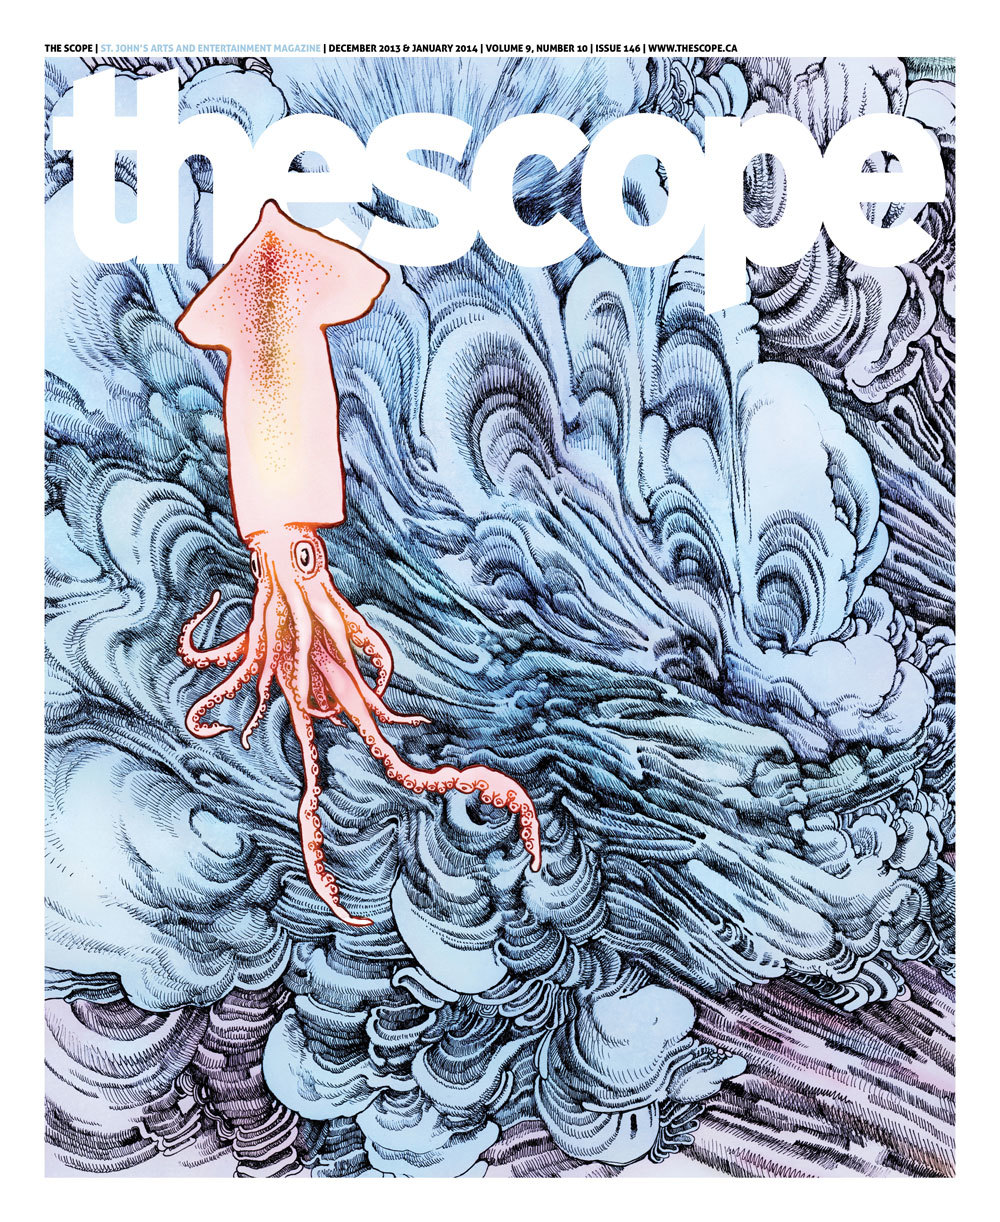 thescope-146-cover.jpg